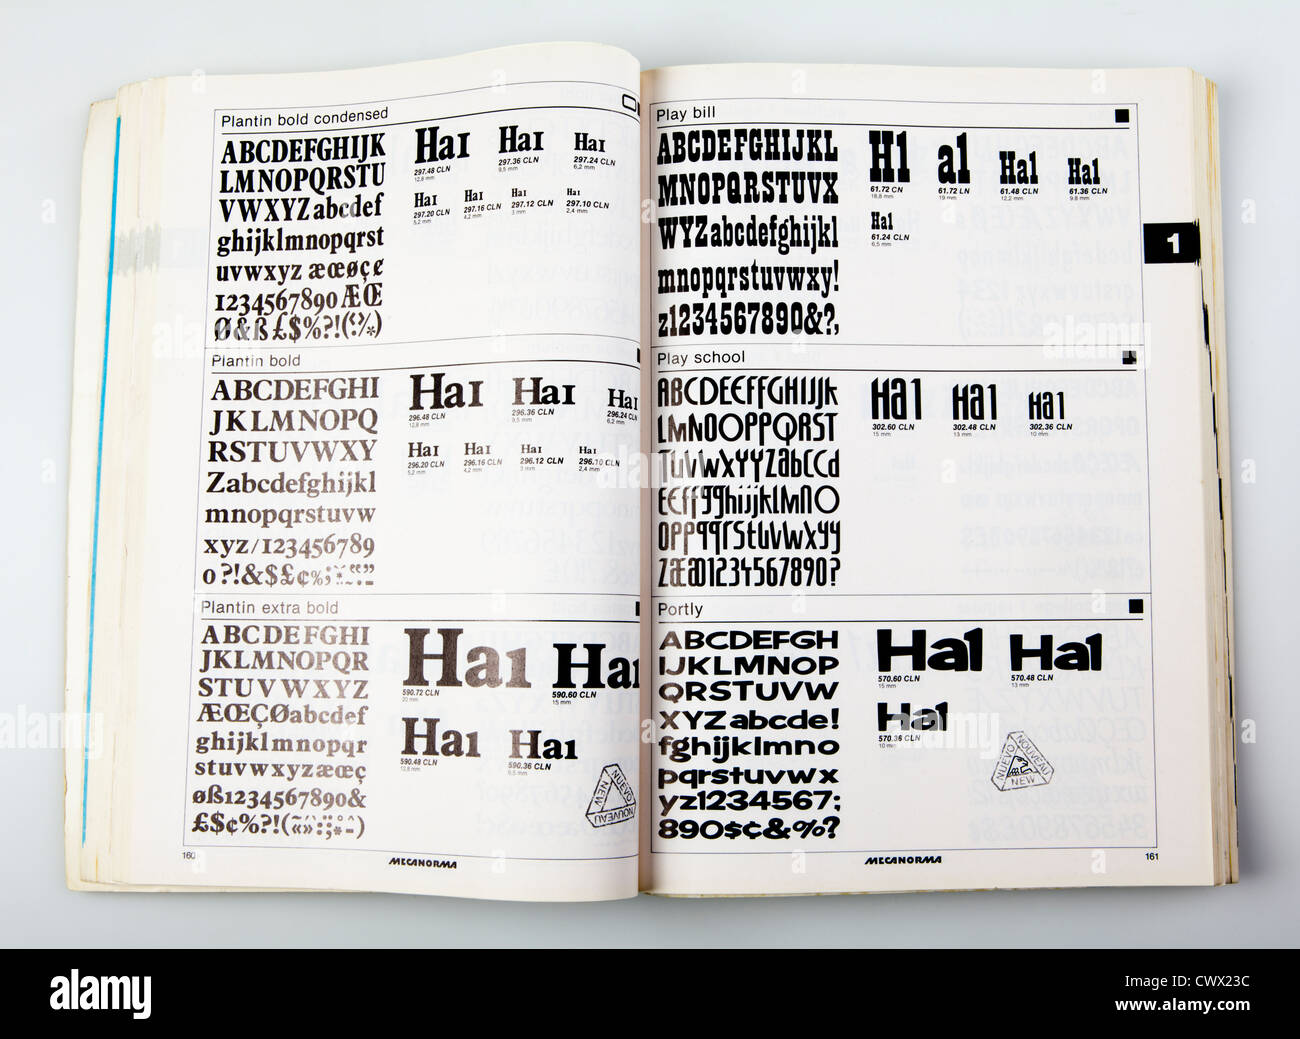 Old catalog with fonts of transferrable lettering like Letraset, 20th century, Germany - Stock Image